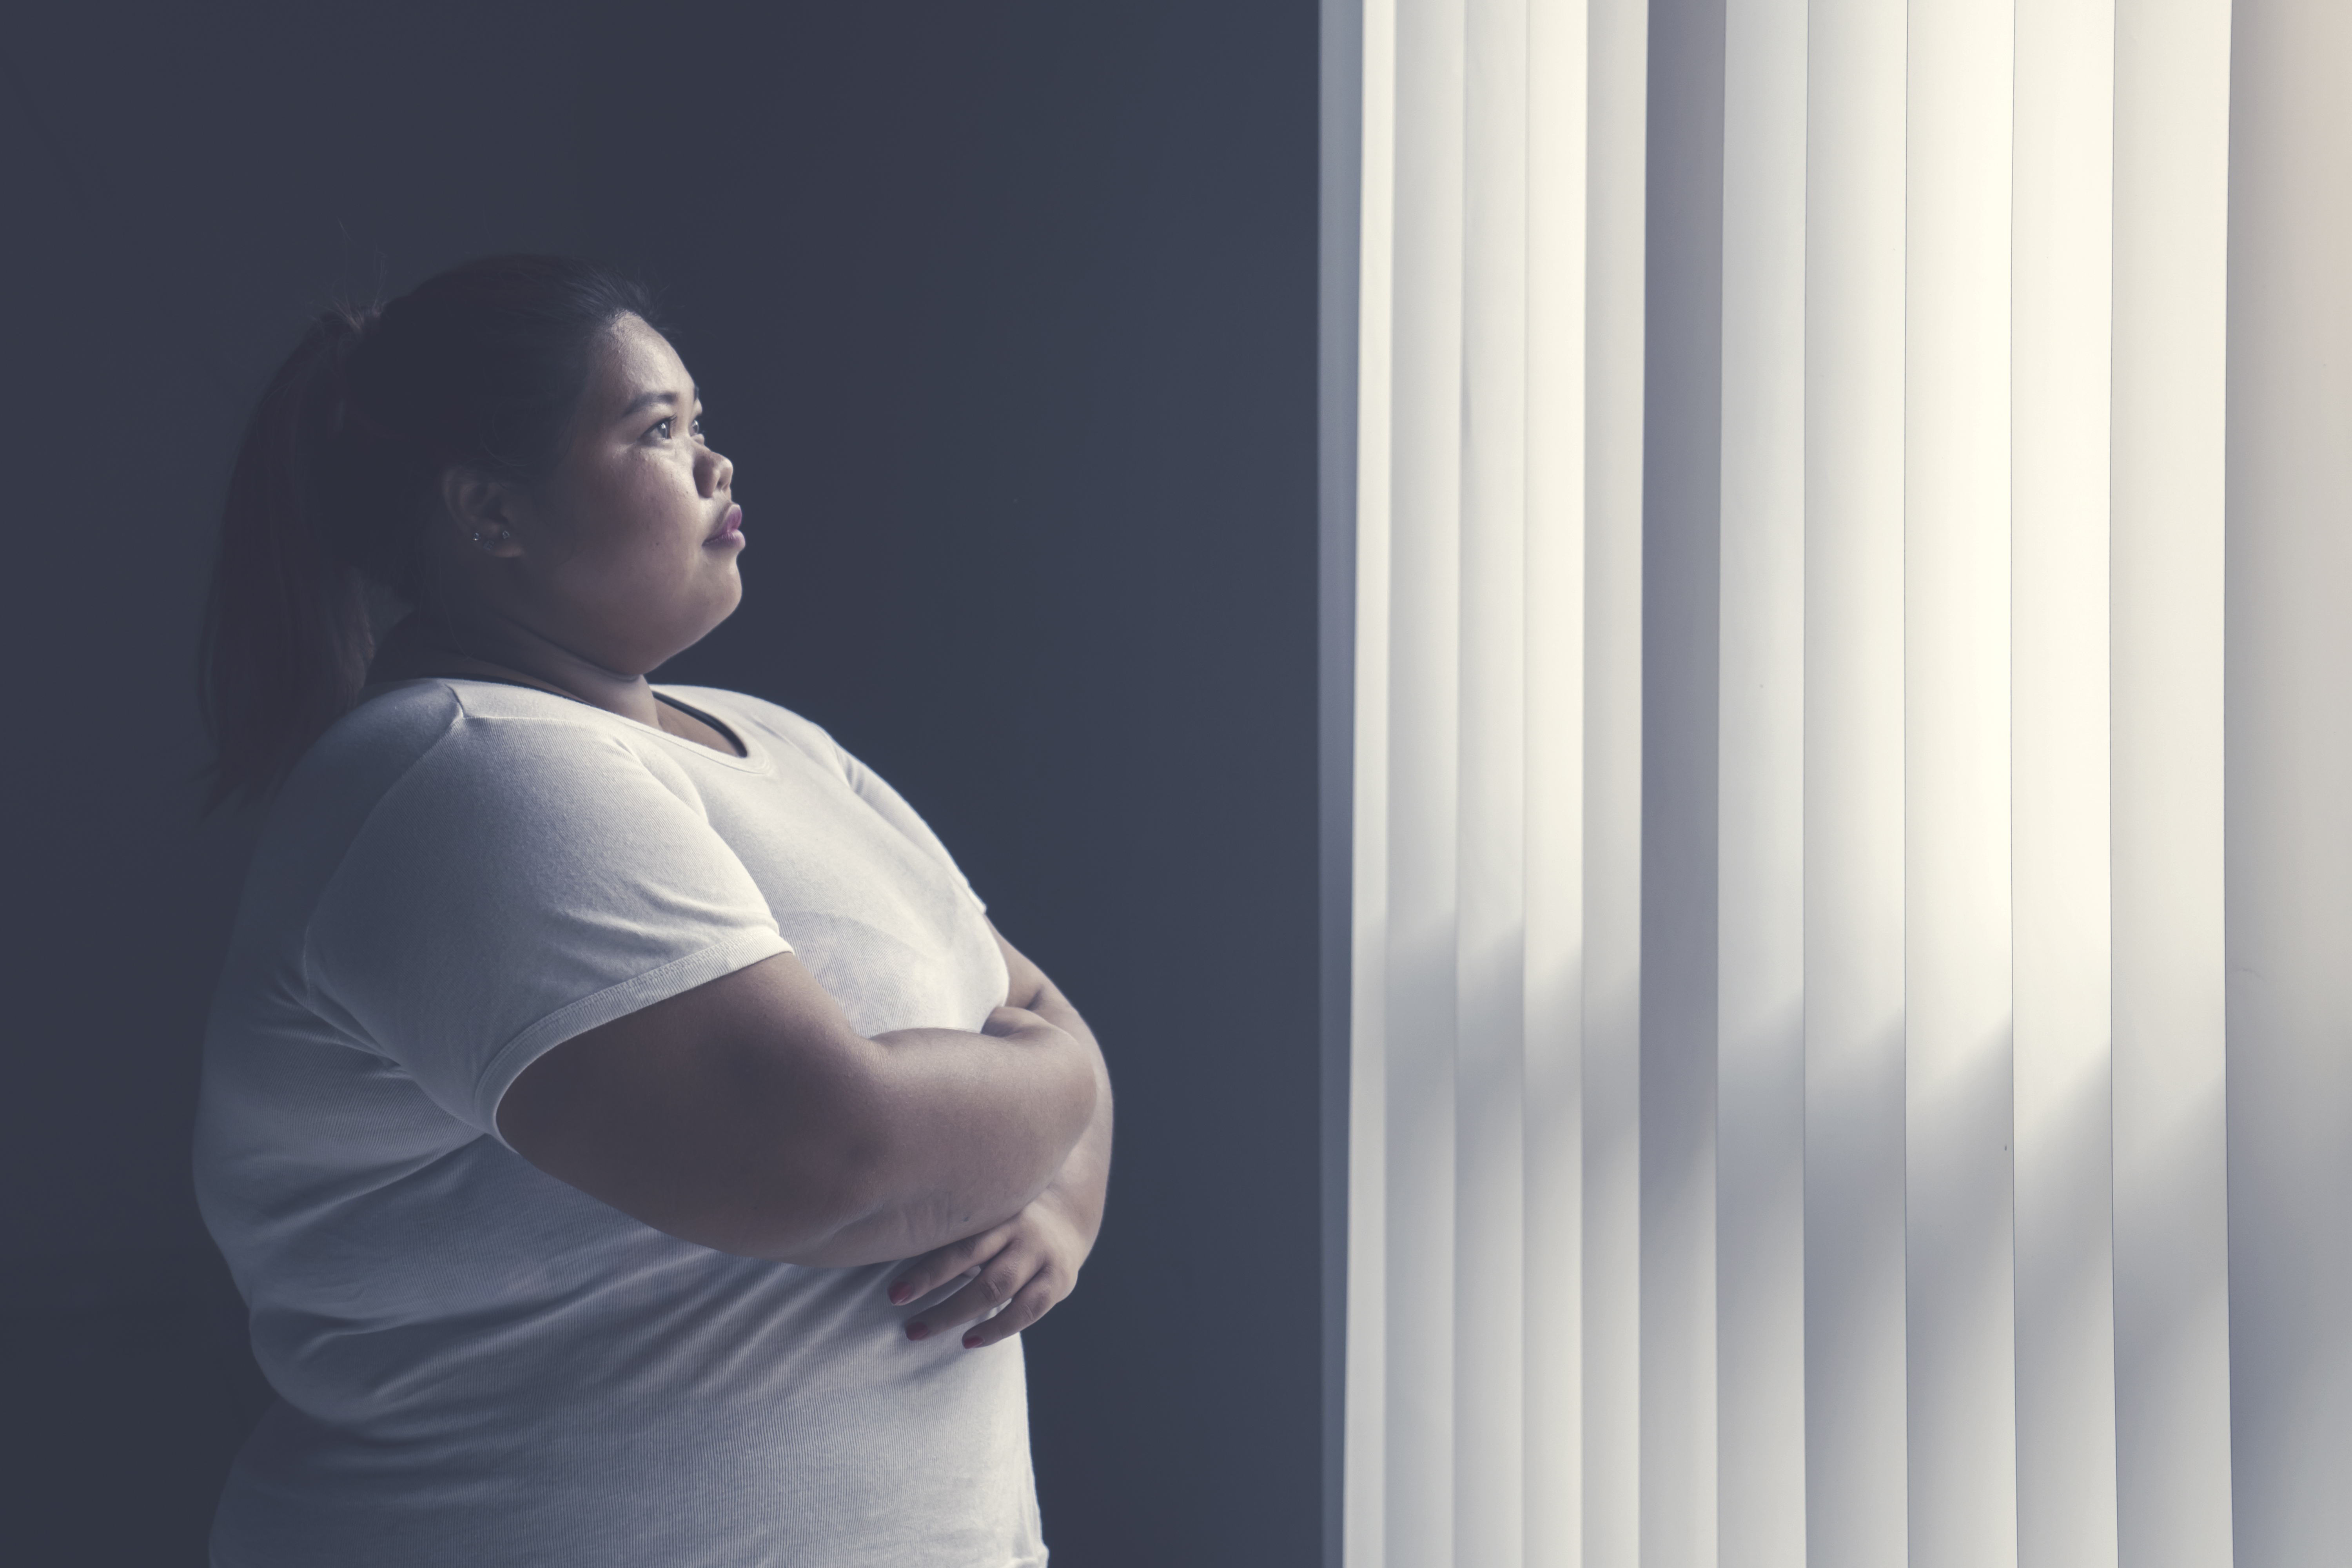 An overweight woman looks out a window